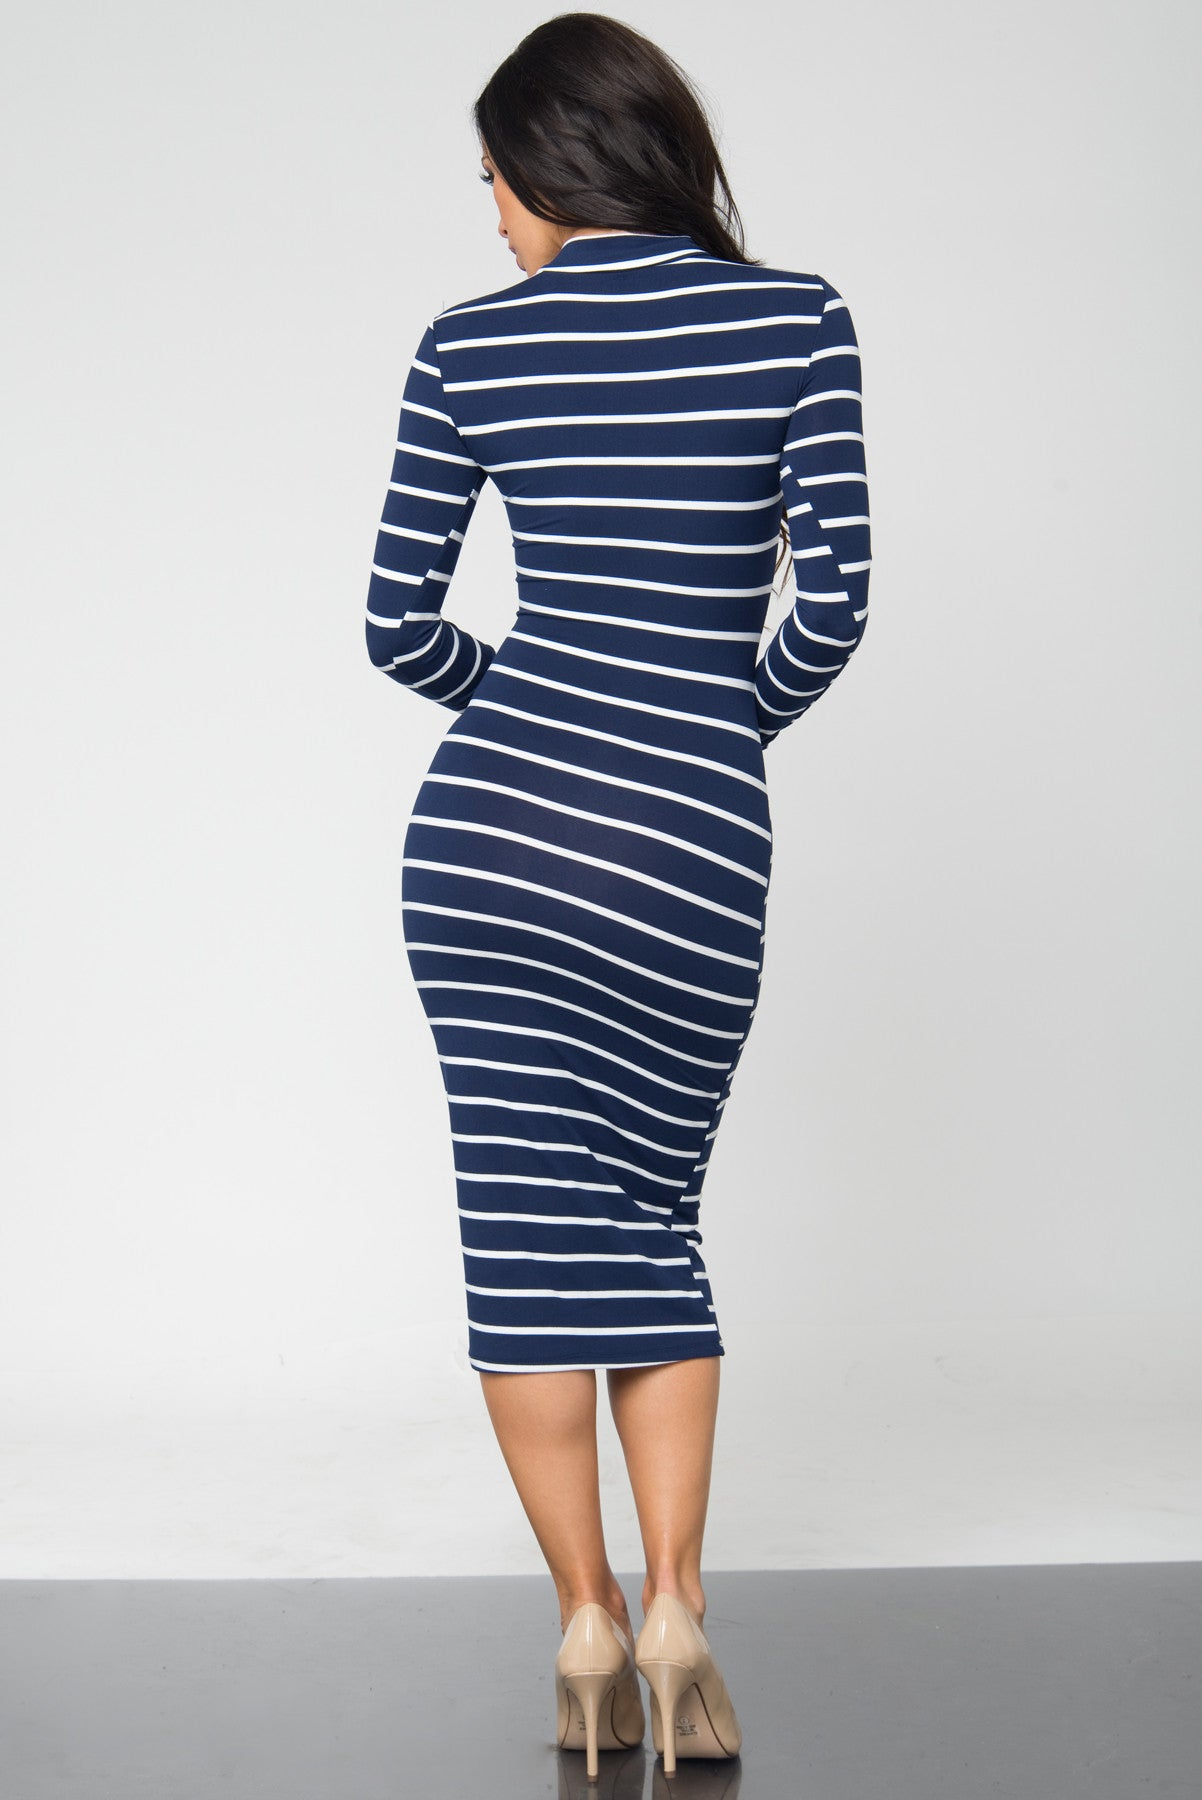 Bibi Navy Stripped Dress - Fashion Effect Store  - 3